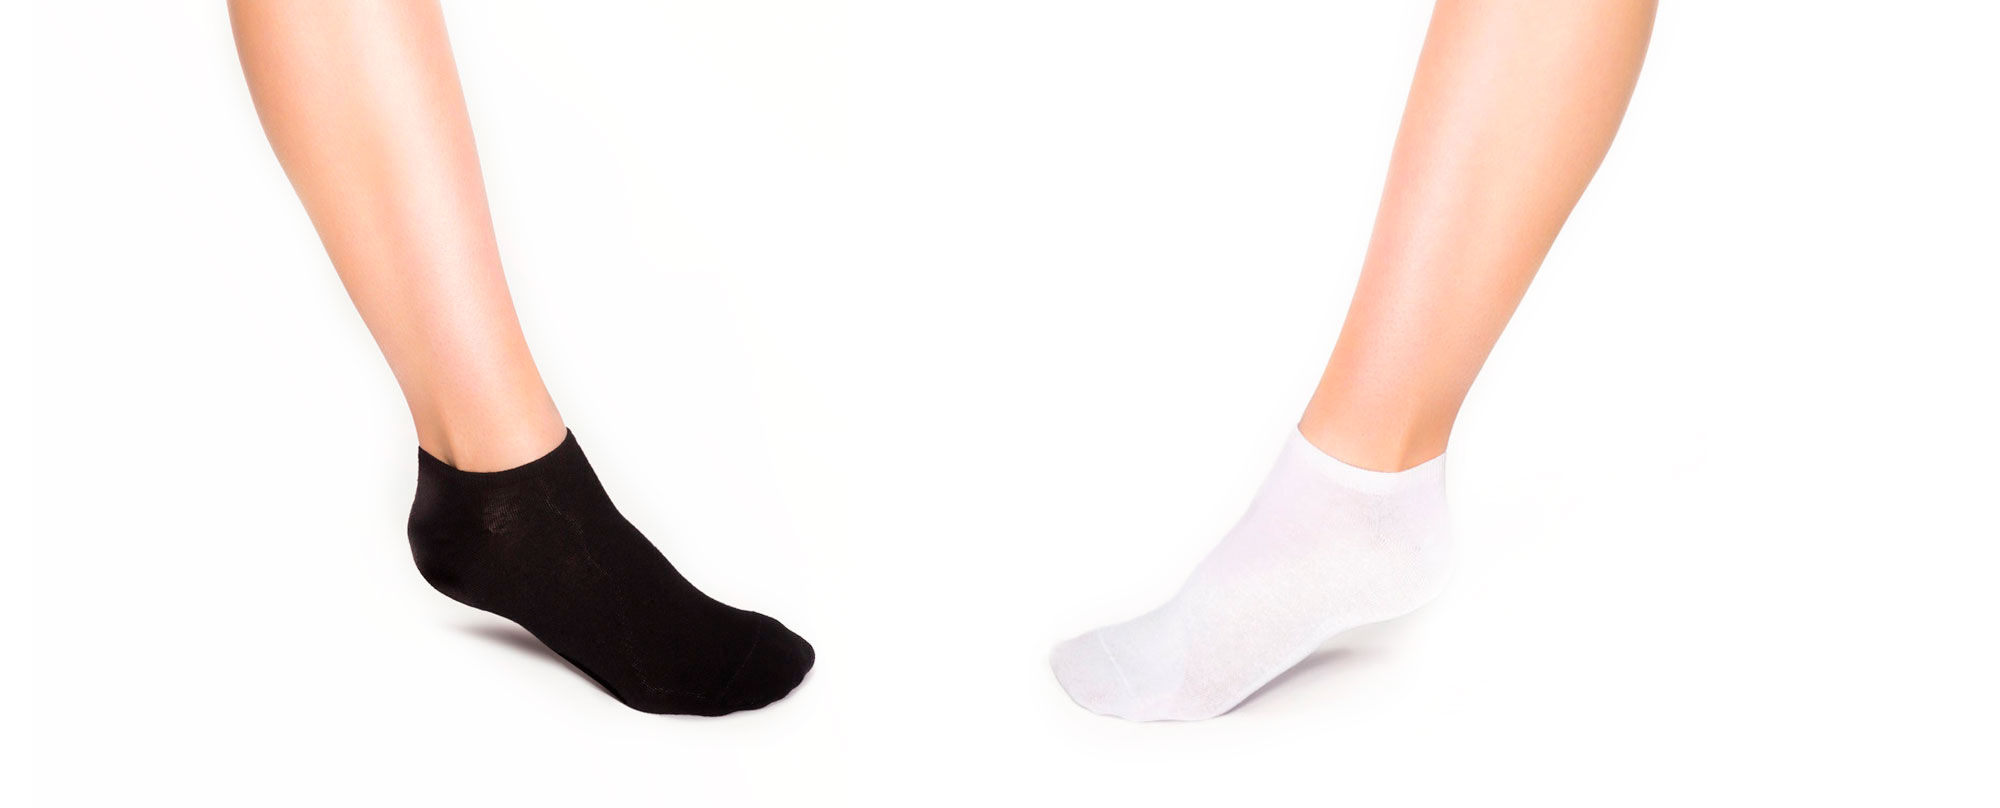 Shooting photo chaussettes podologique